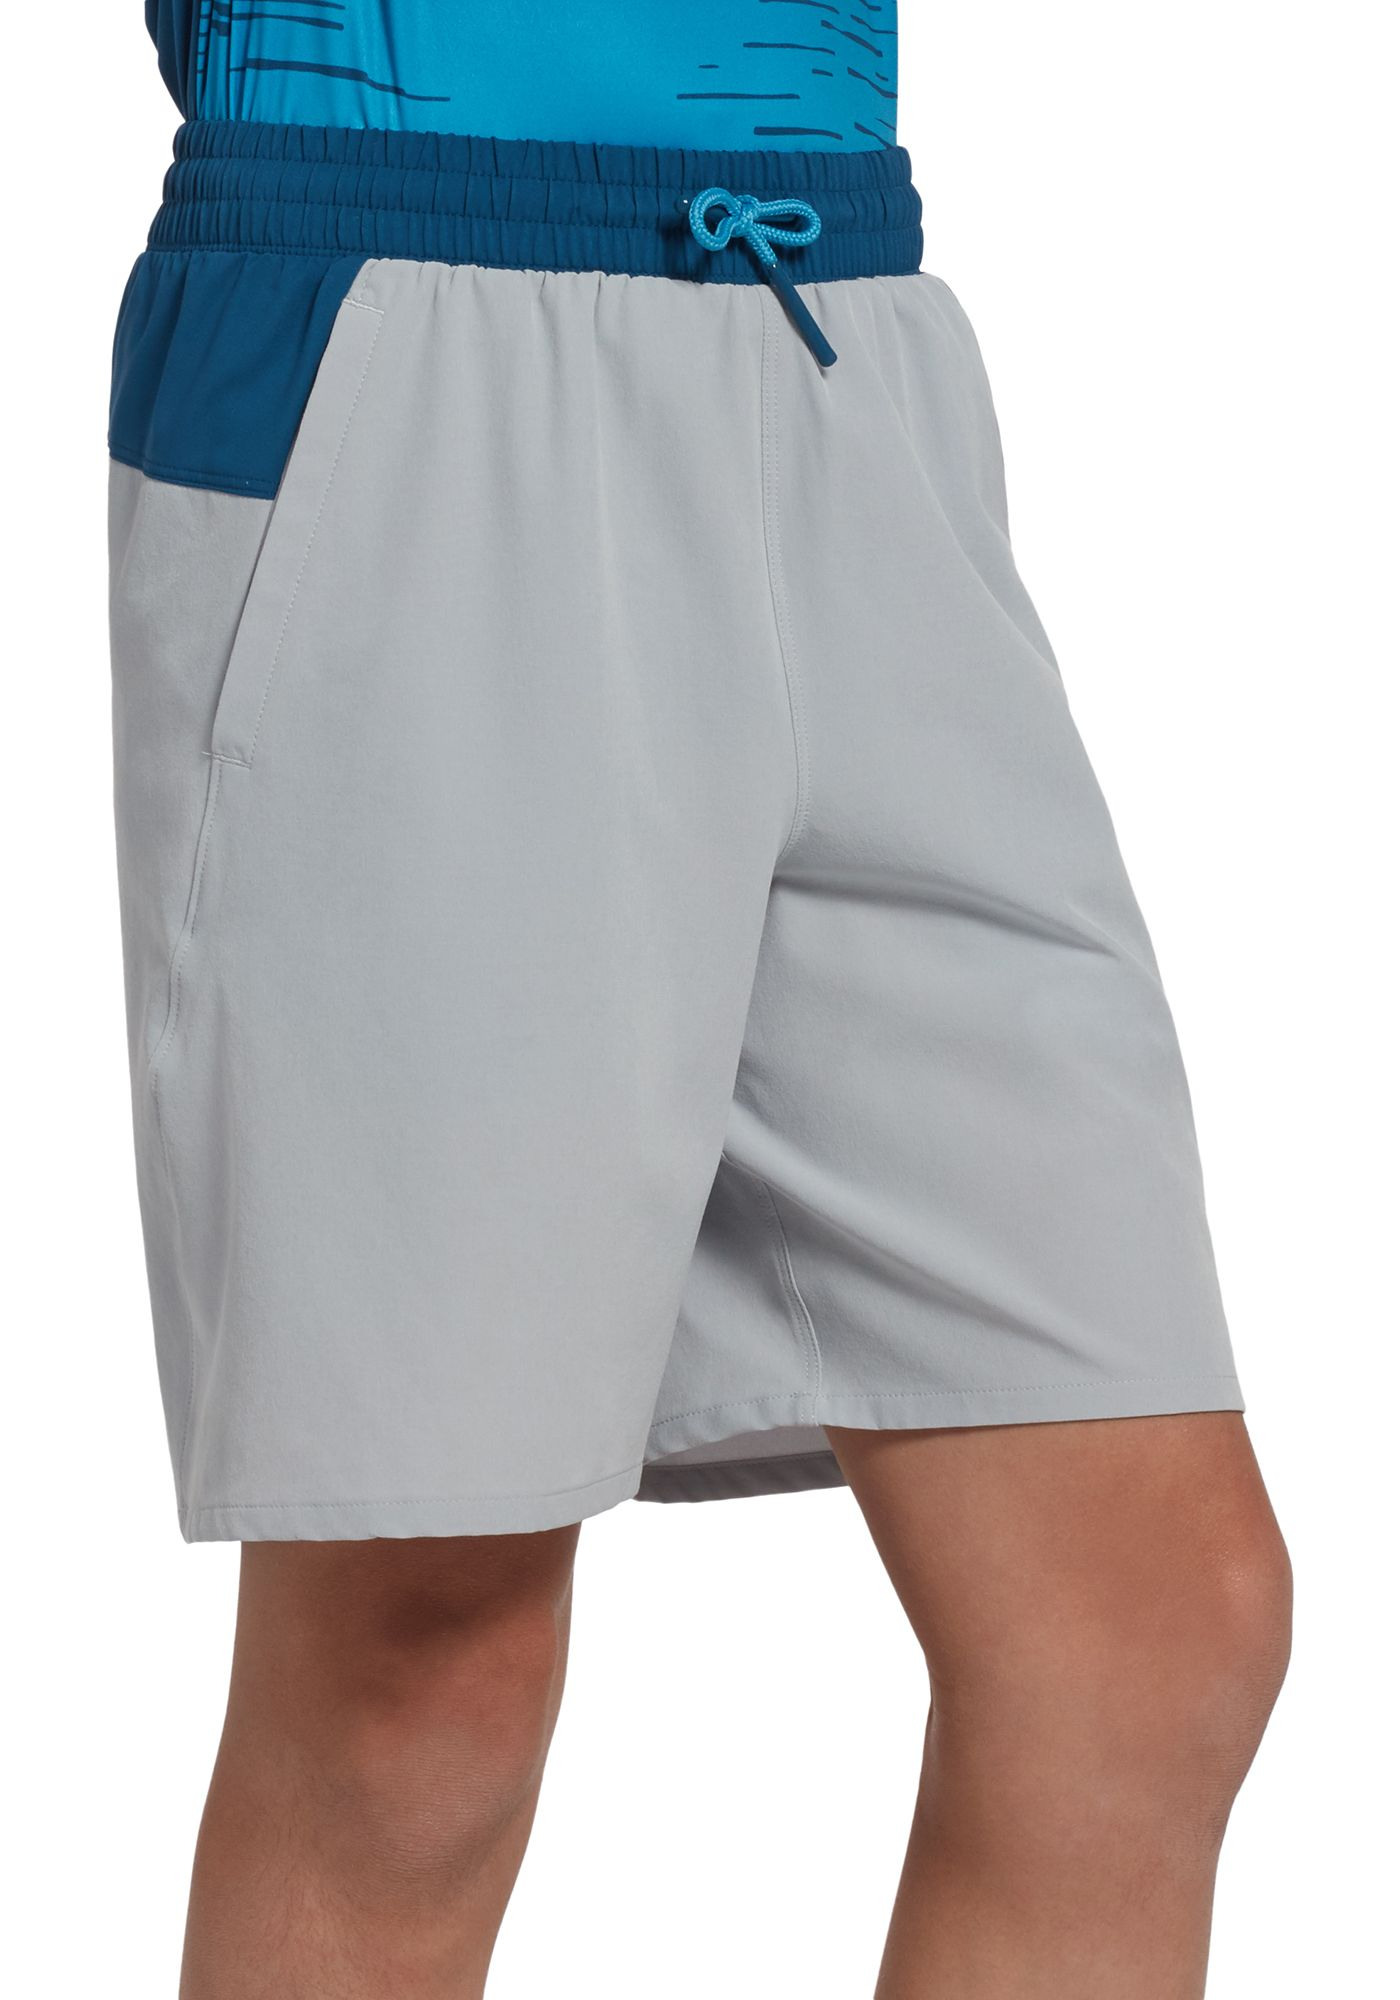 Under Armour Boy's Splash Shorts